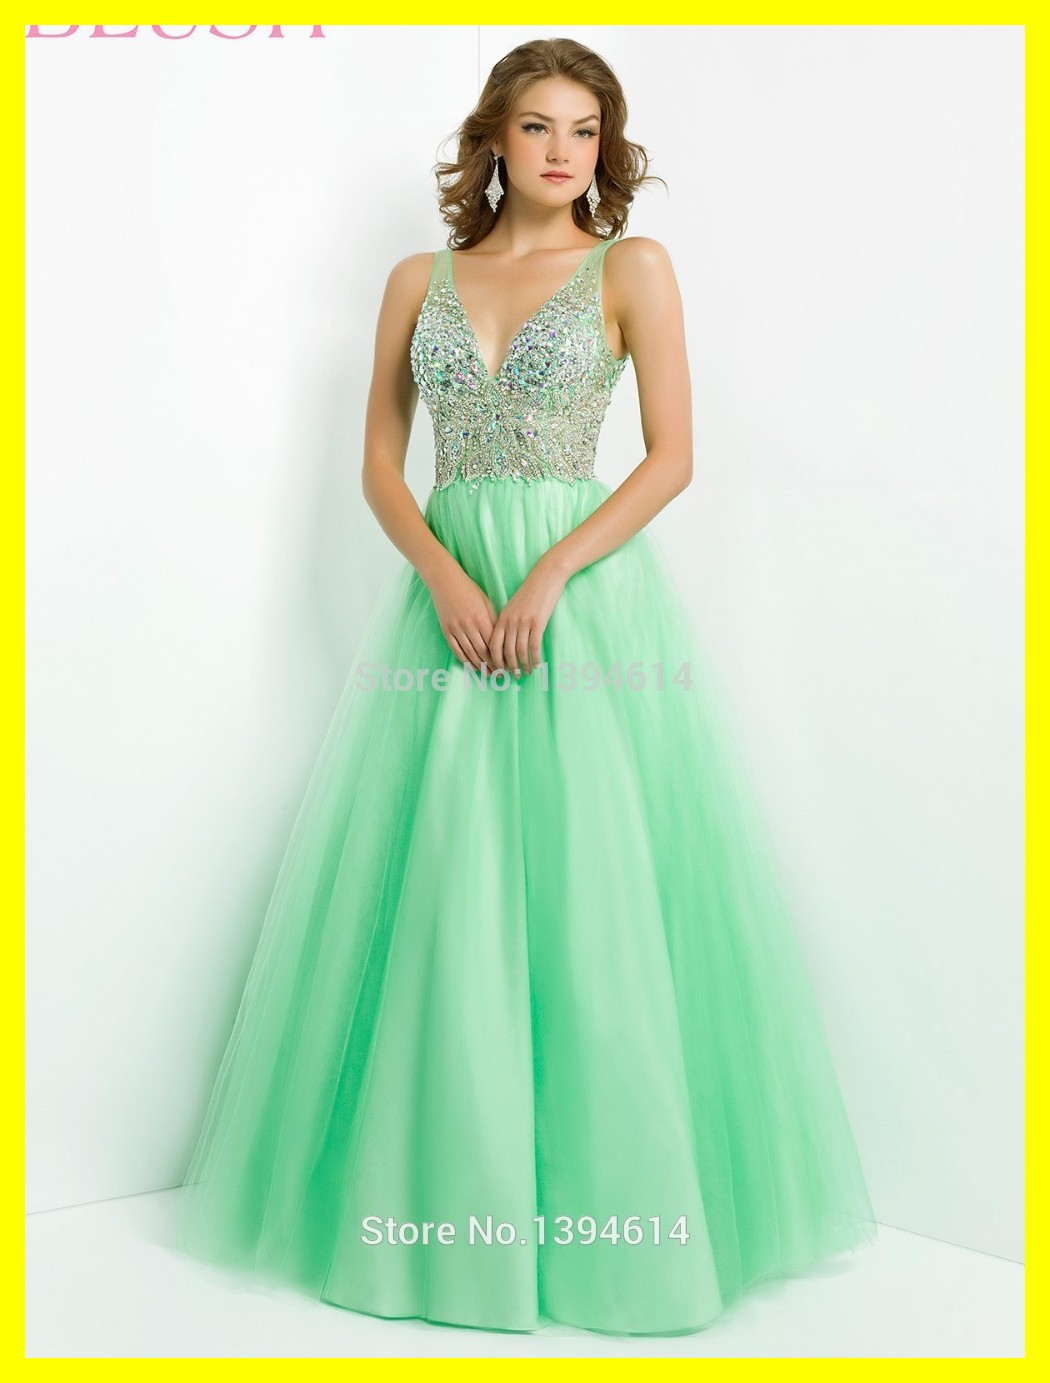 Small Crop Of Used Prom Dresses